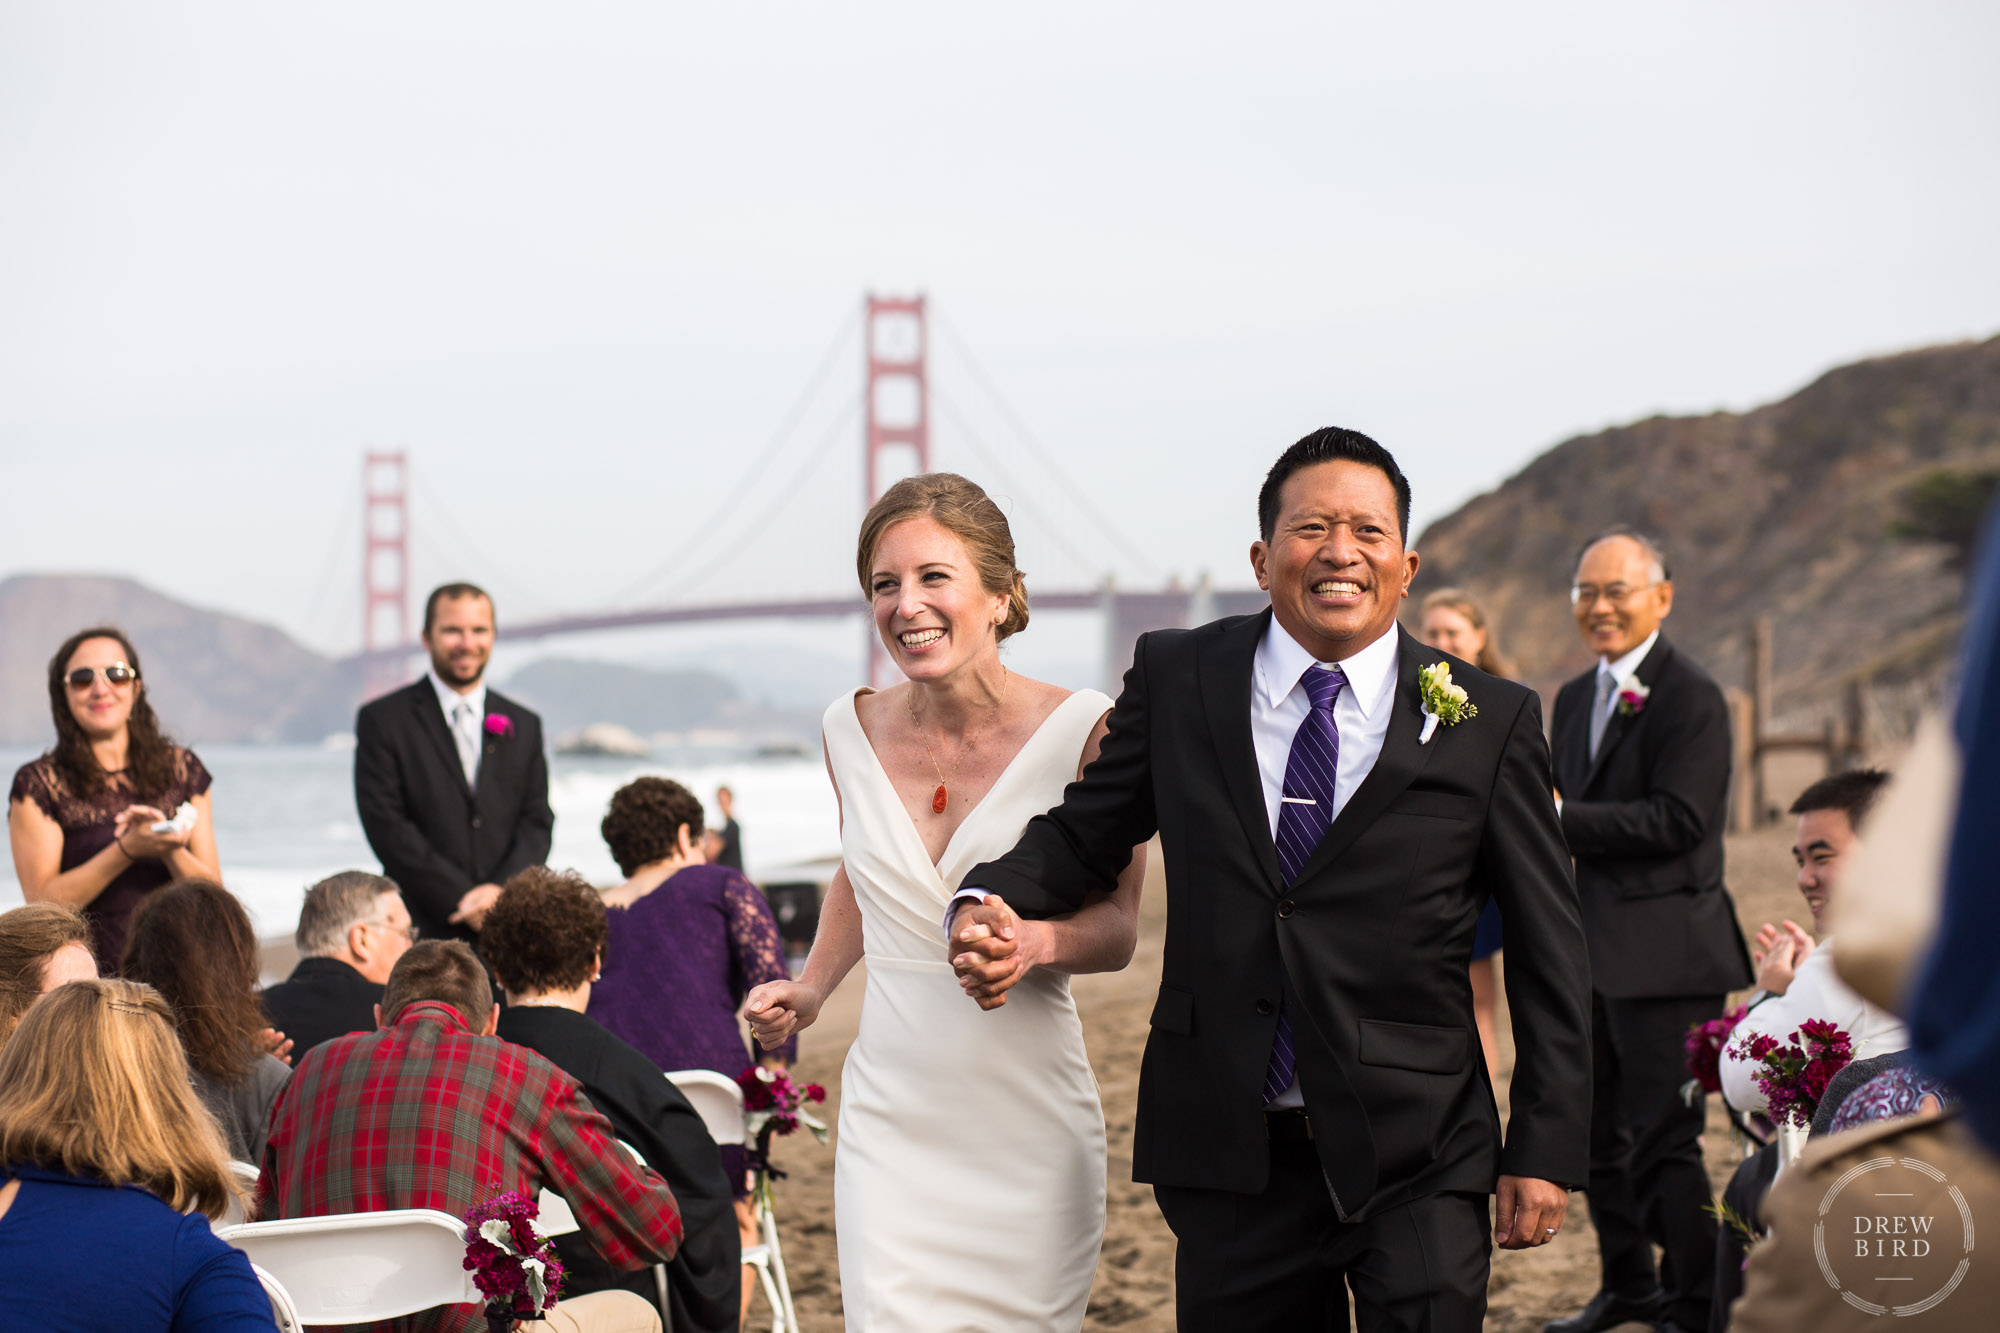 Bride and groom holding hands laughing walking down aisle. Baker Beach wedding ceremony. San Francisco wedding photojournalist Drew Bird Photo.